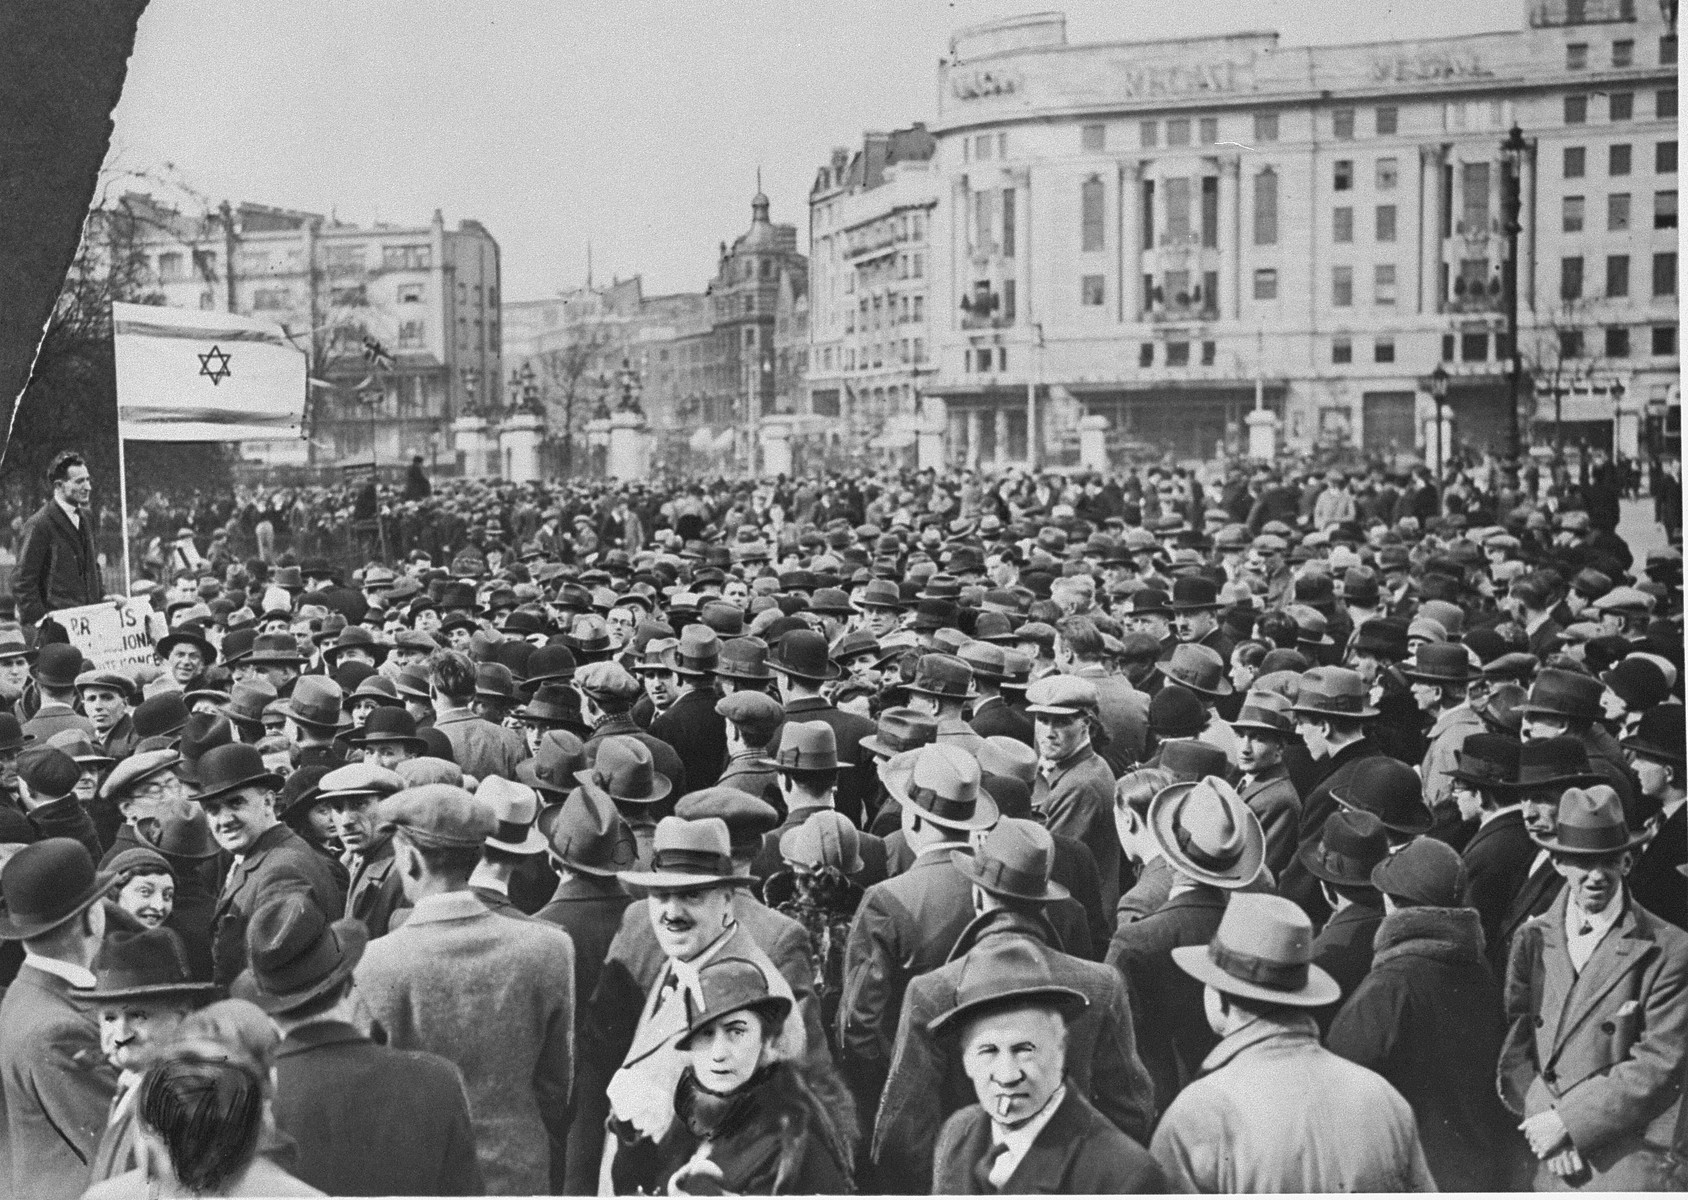 British Jews protest against the enactment of anti-Jewish legislation in Nazi Germany at a rally in London.